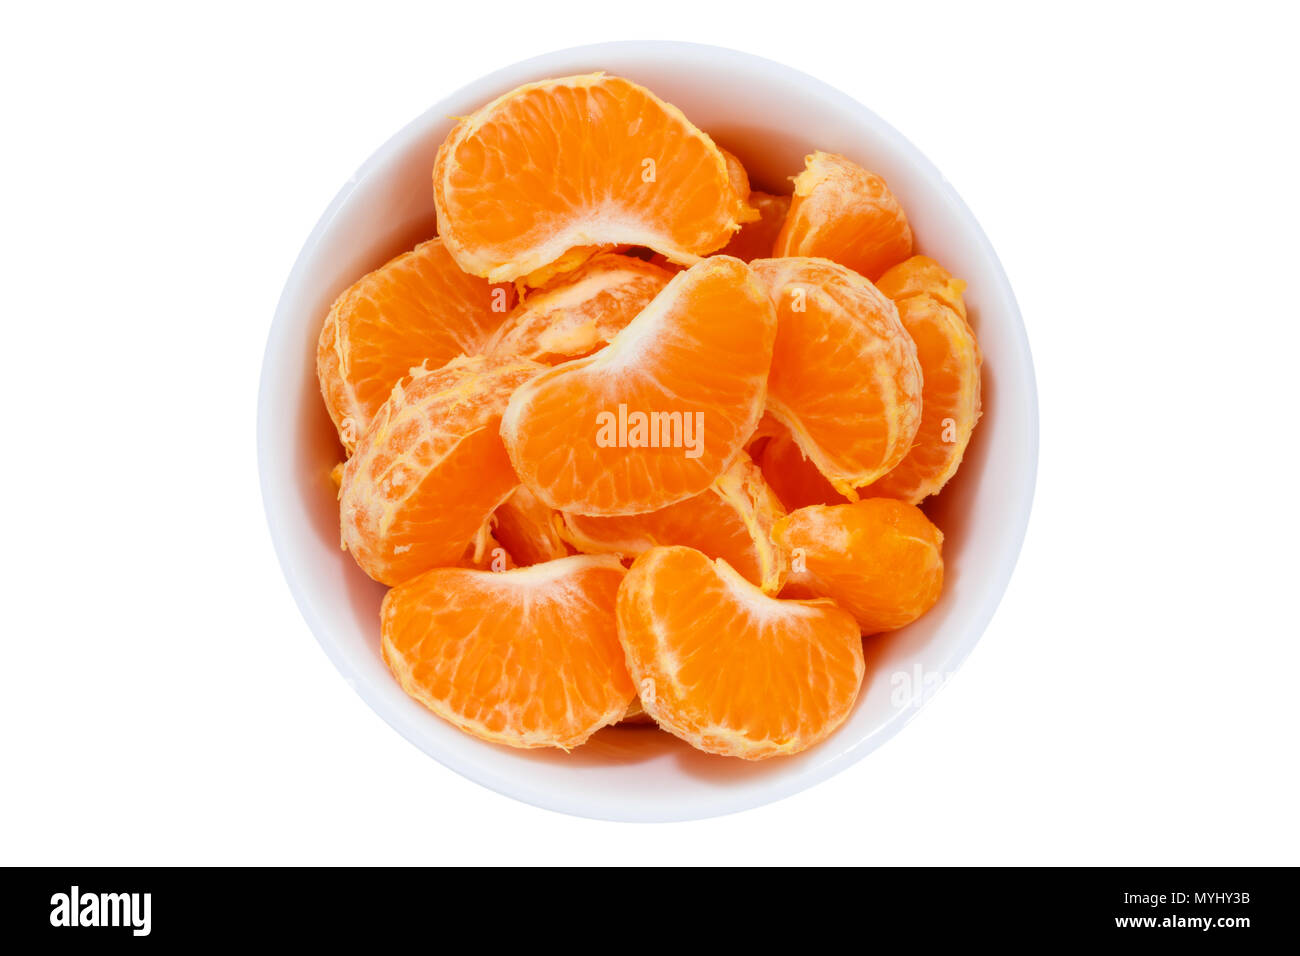 Mandarin oranges fruits from above bowl isolated on a white background - Stock Image